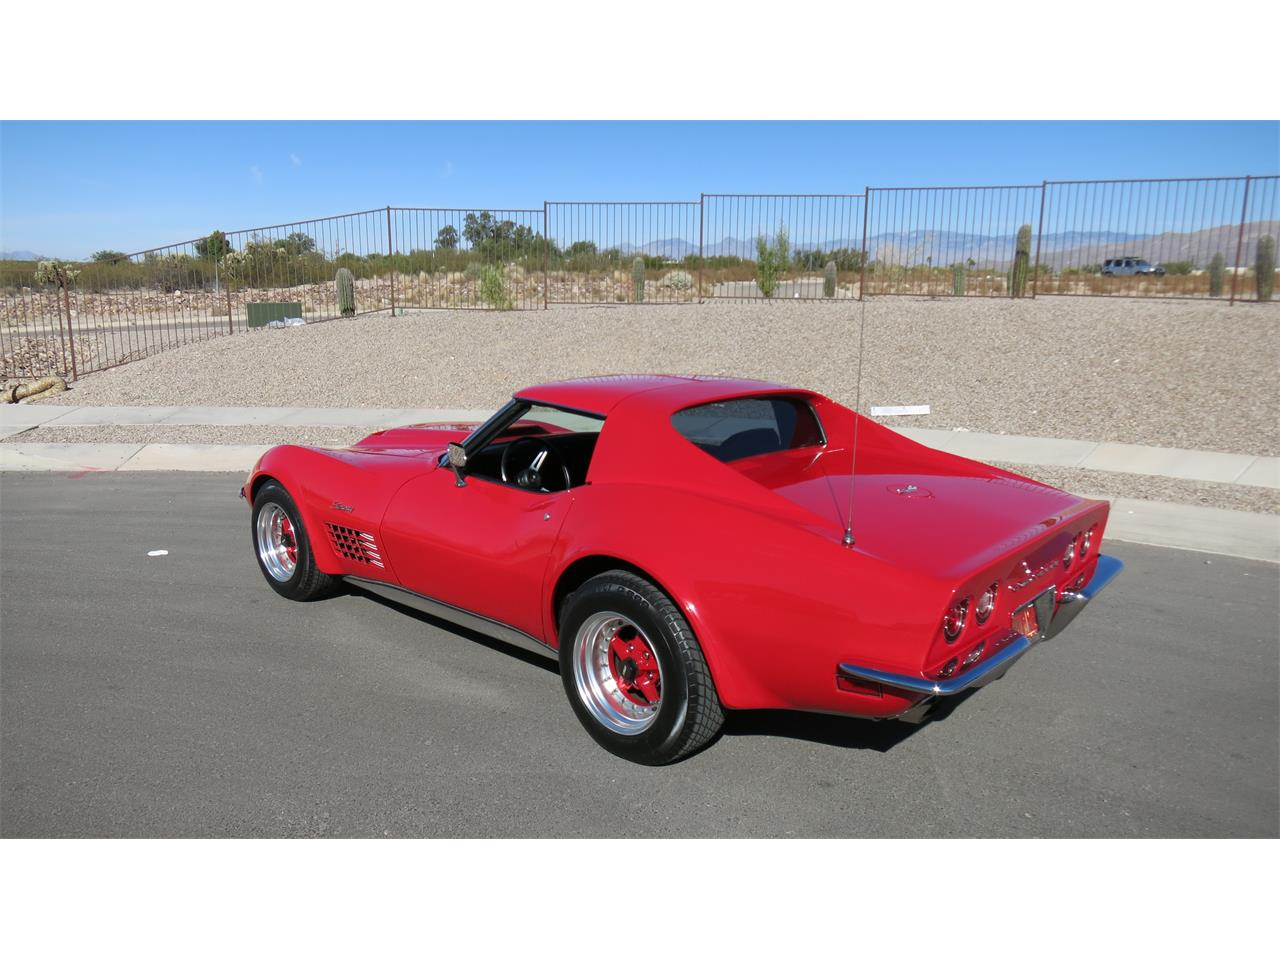 Large Picture of 1972 Corvette located in Vail Arizona - $25,000.00 Offered by a Private Seller - OCSF